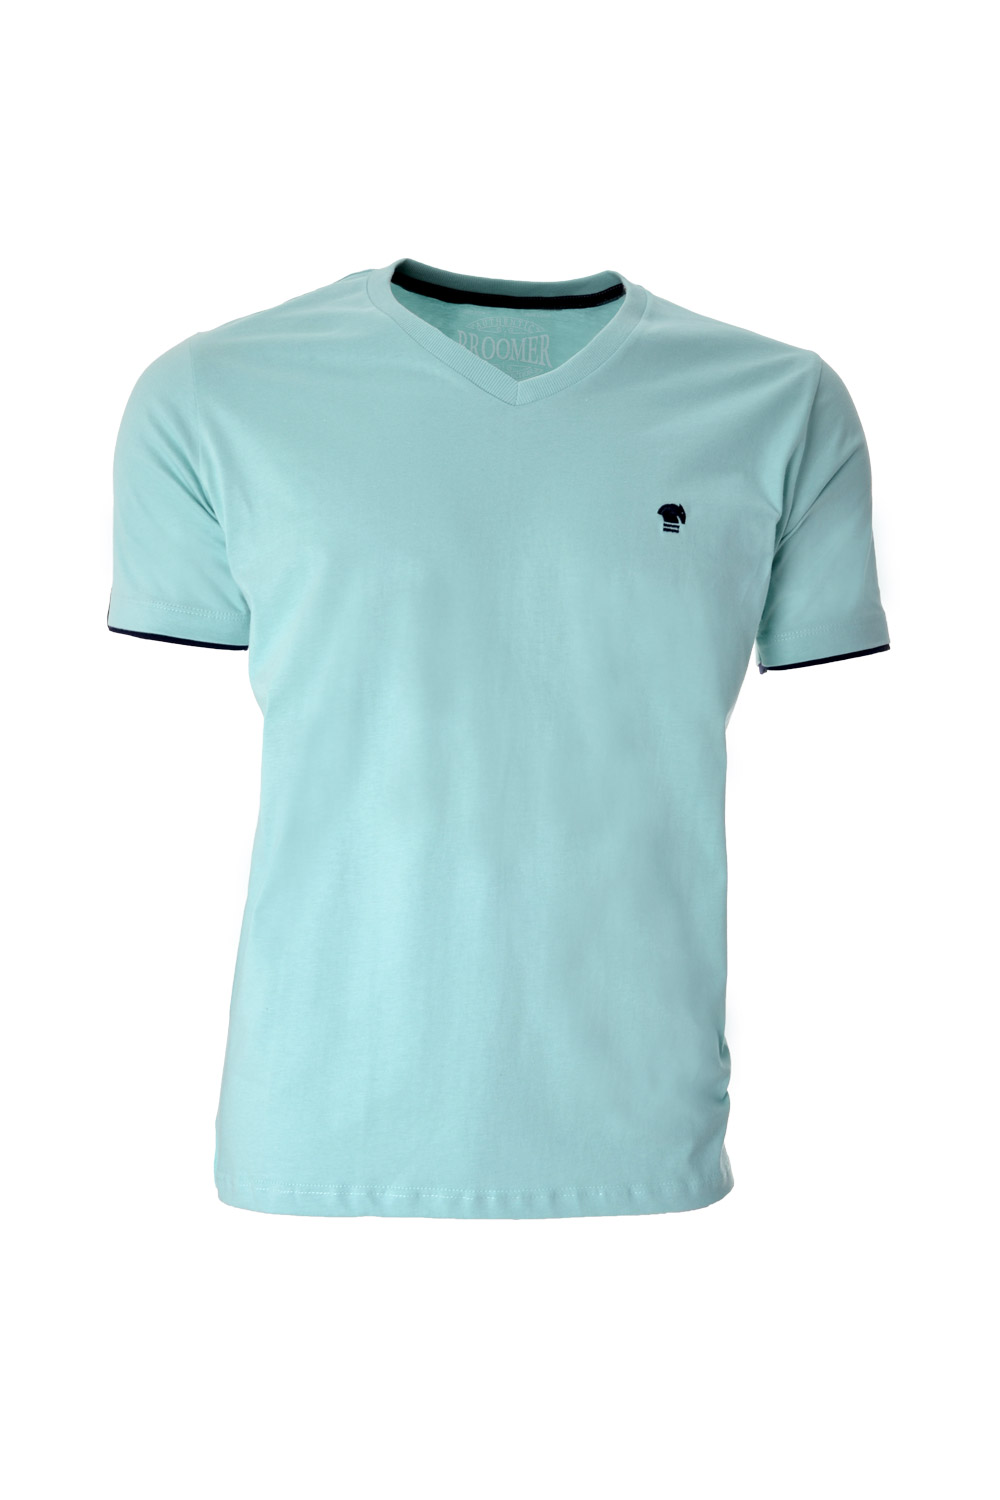 CAMISETA MC BLUES SUPER SLIM ALGODAO GOLA V LISO VERDE AGUA